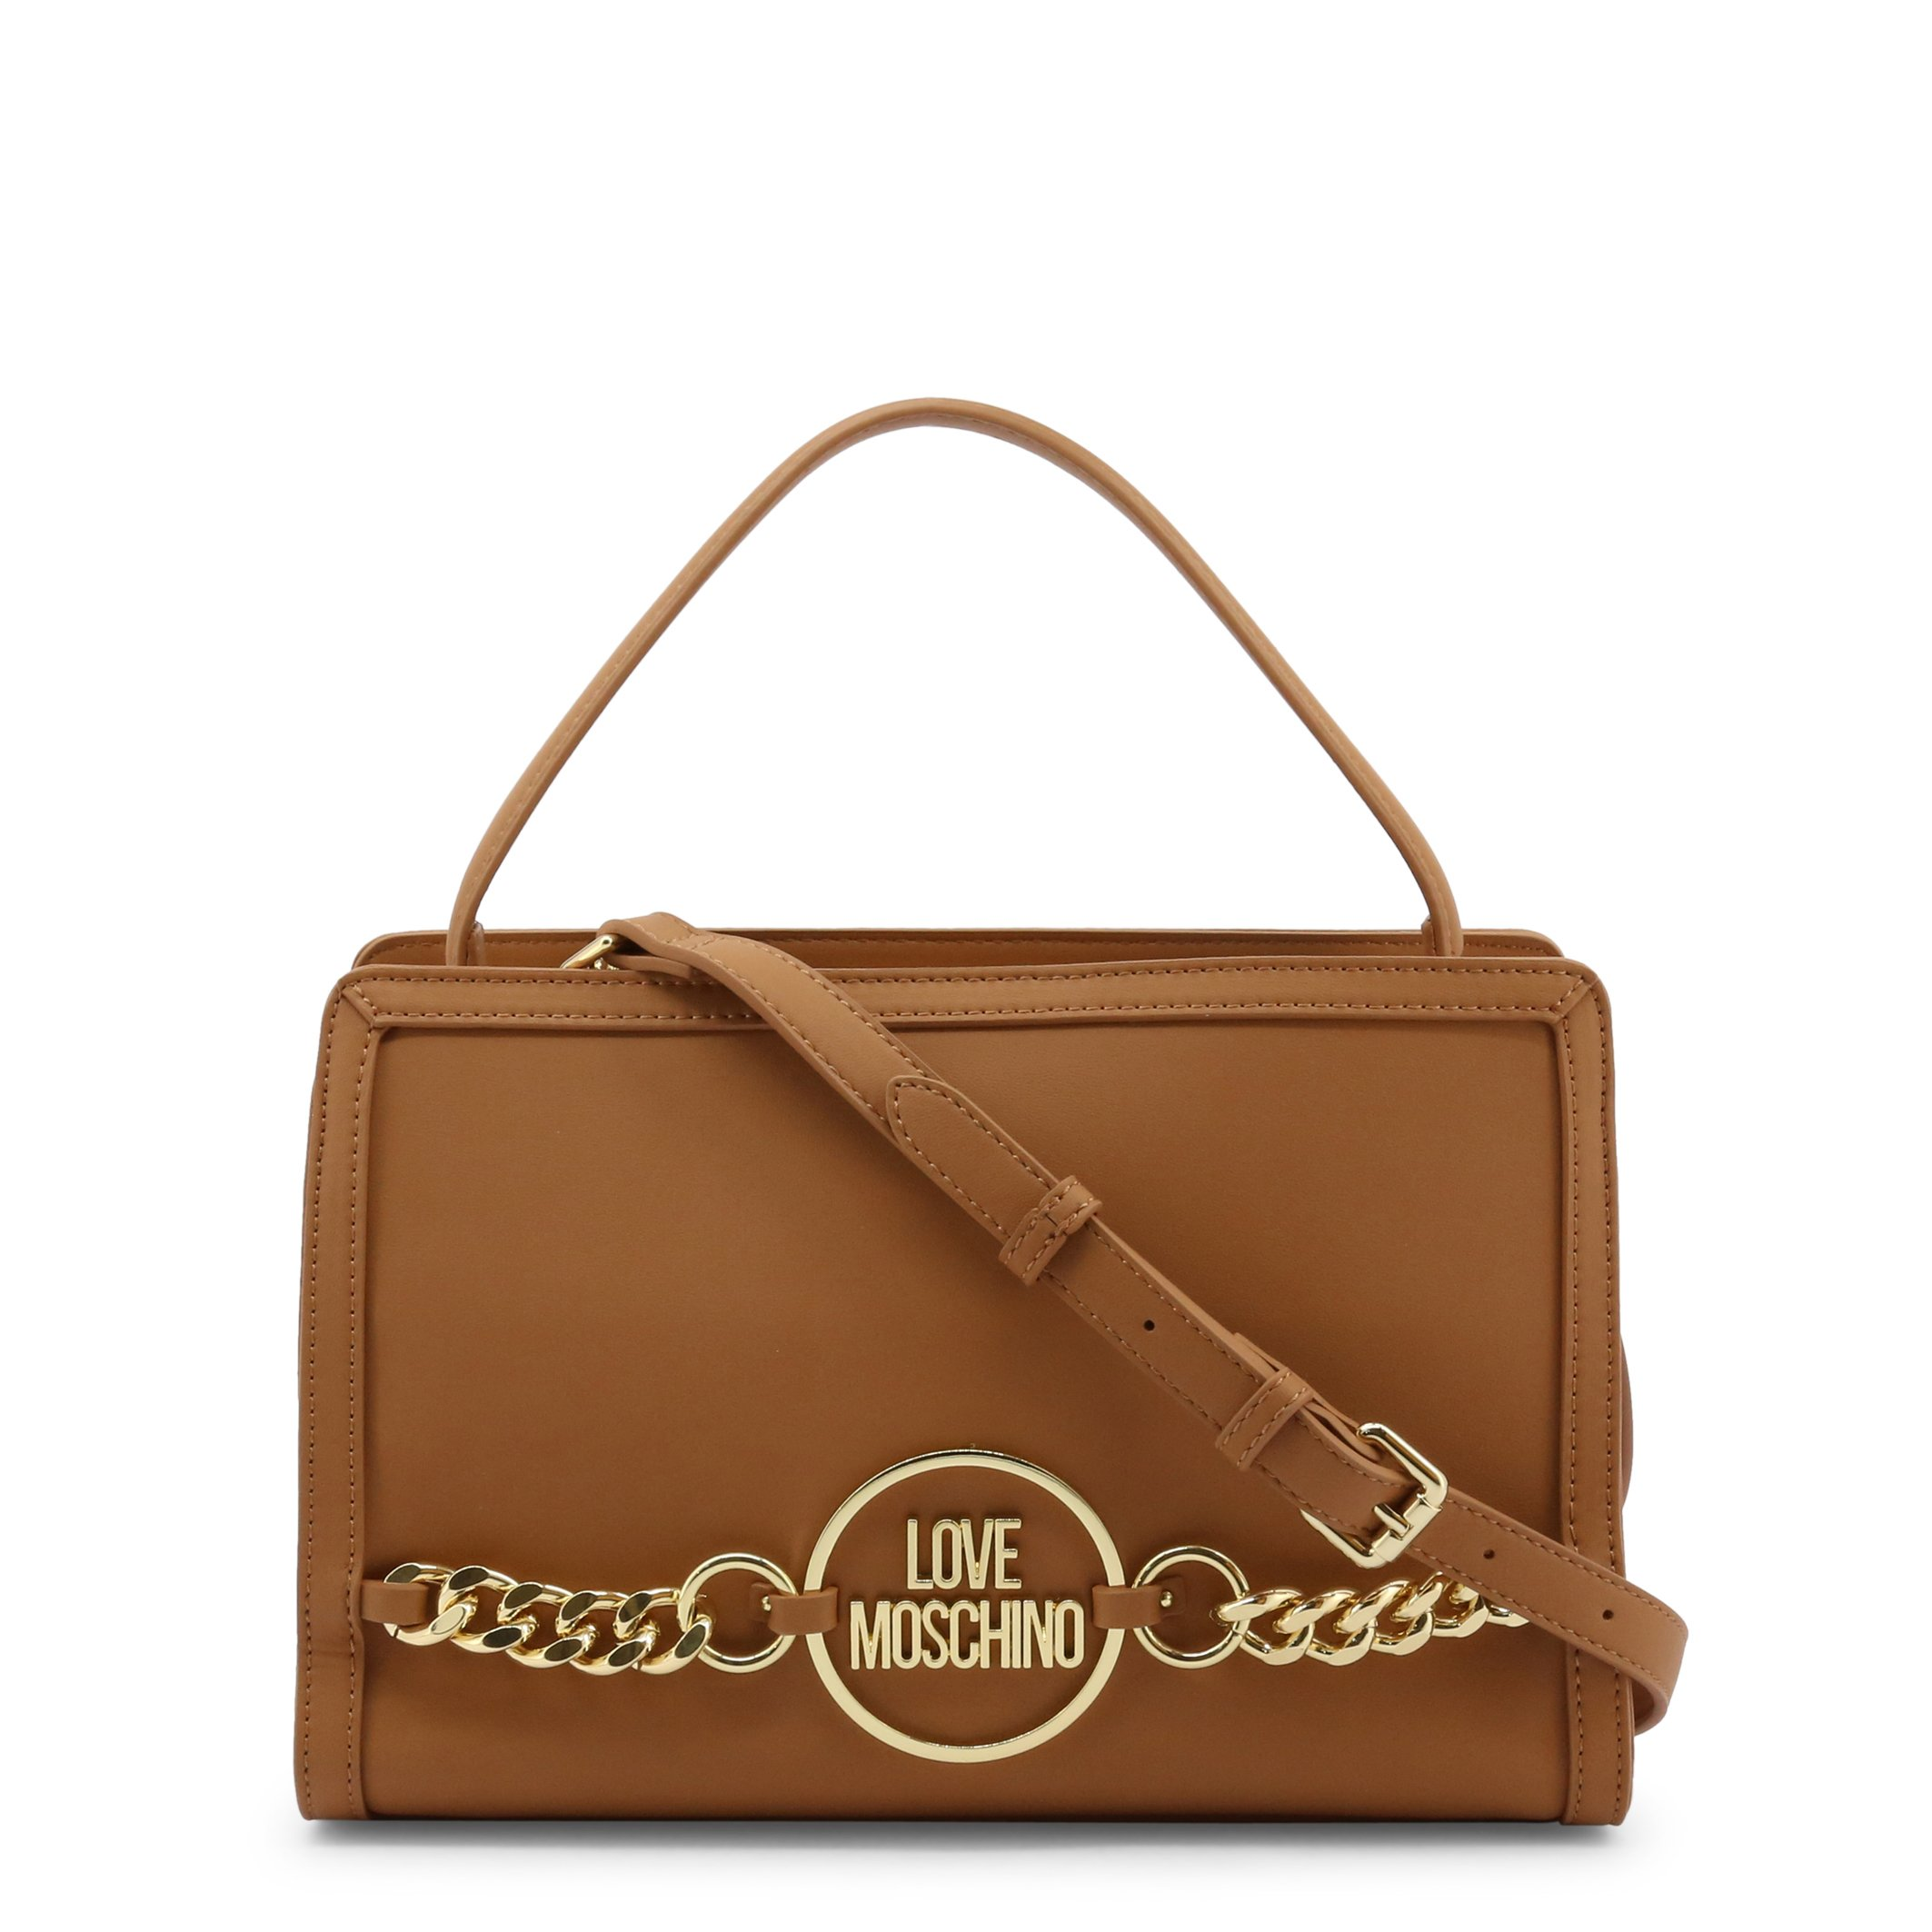 Love Moschino Women's Handbag Various Colours JC4153PP1DLE0 - brown NOSIZE